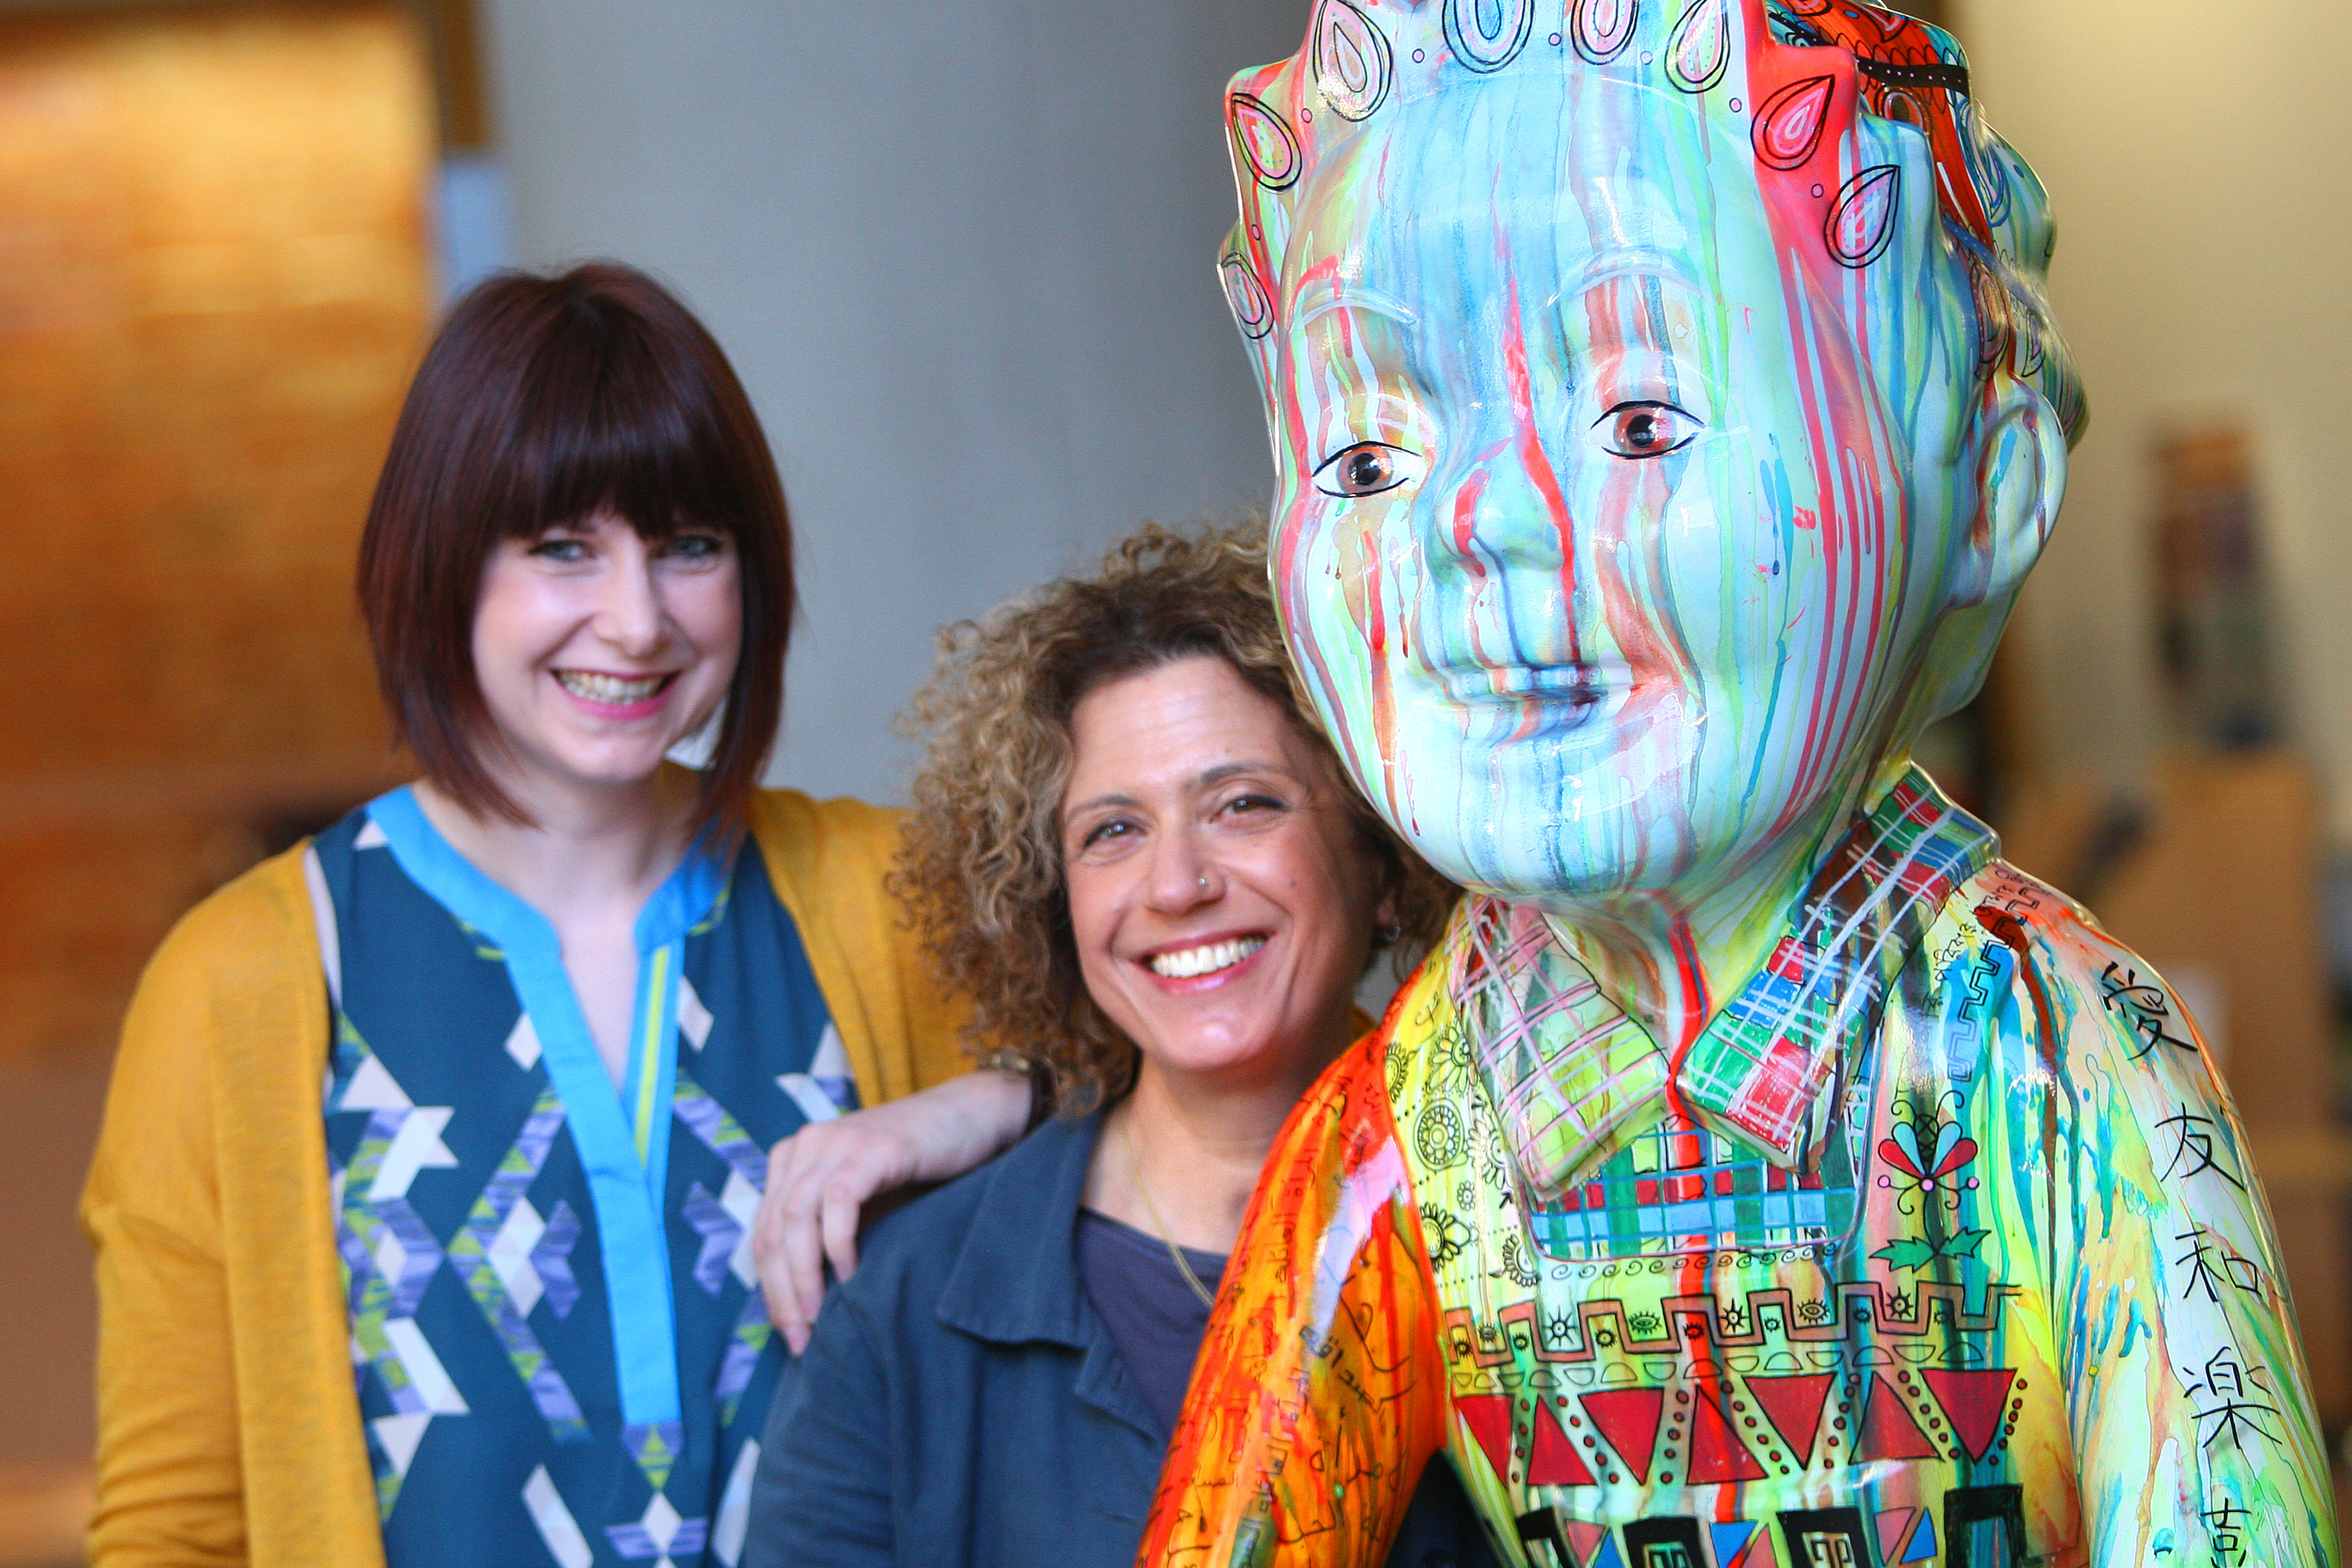 Dundee International Women's Centre illustrator and project support worker Laura Darling and trustee Vered Hopkins welcome the statue to Dundee House.